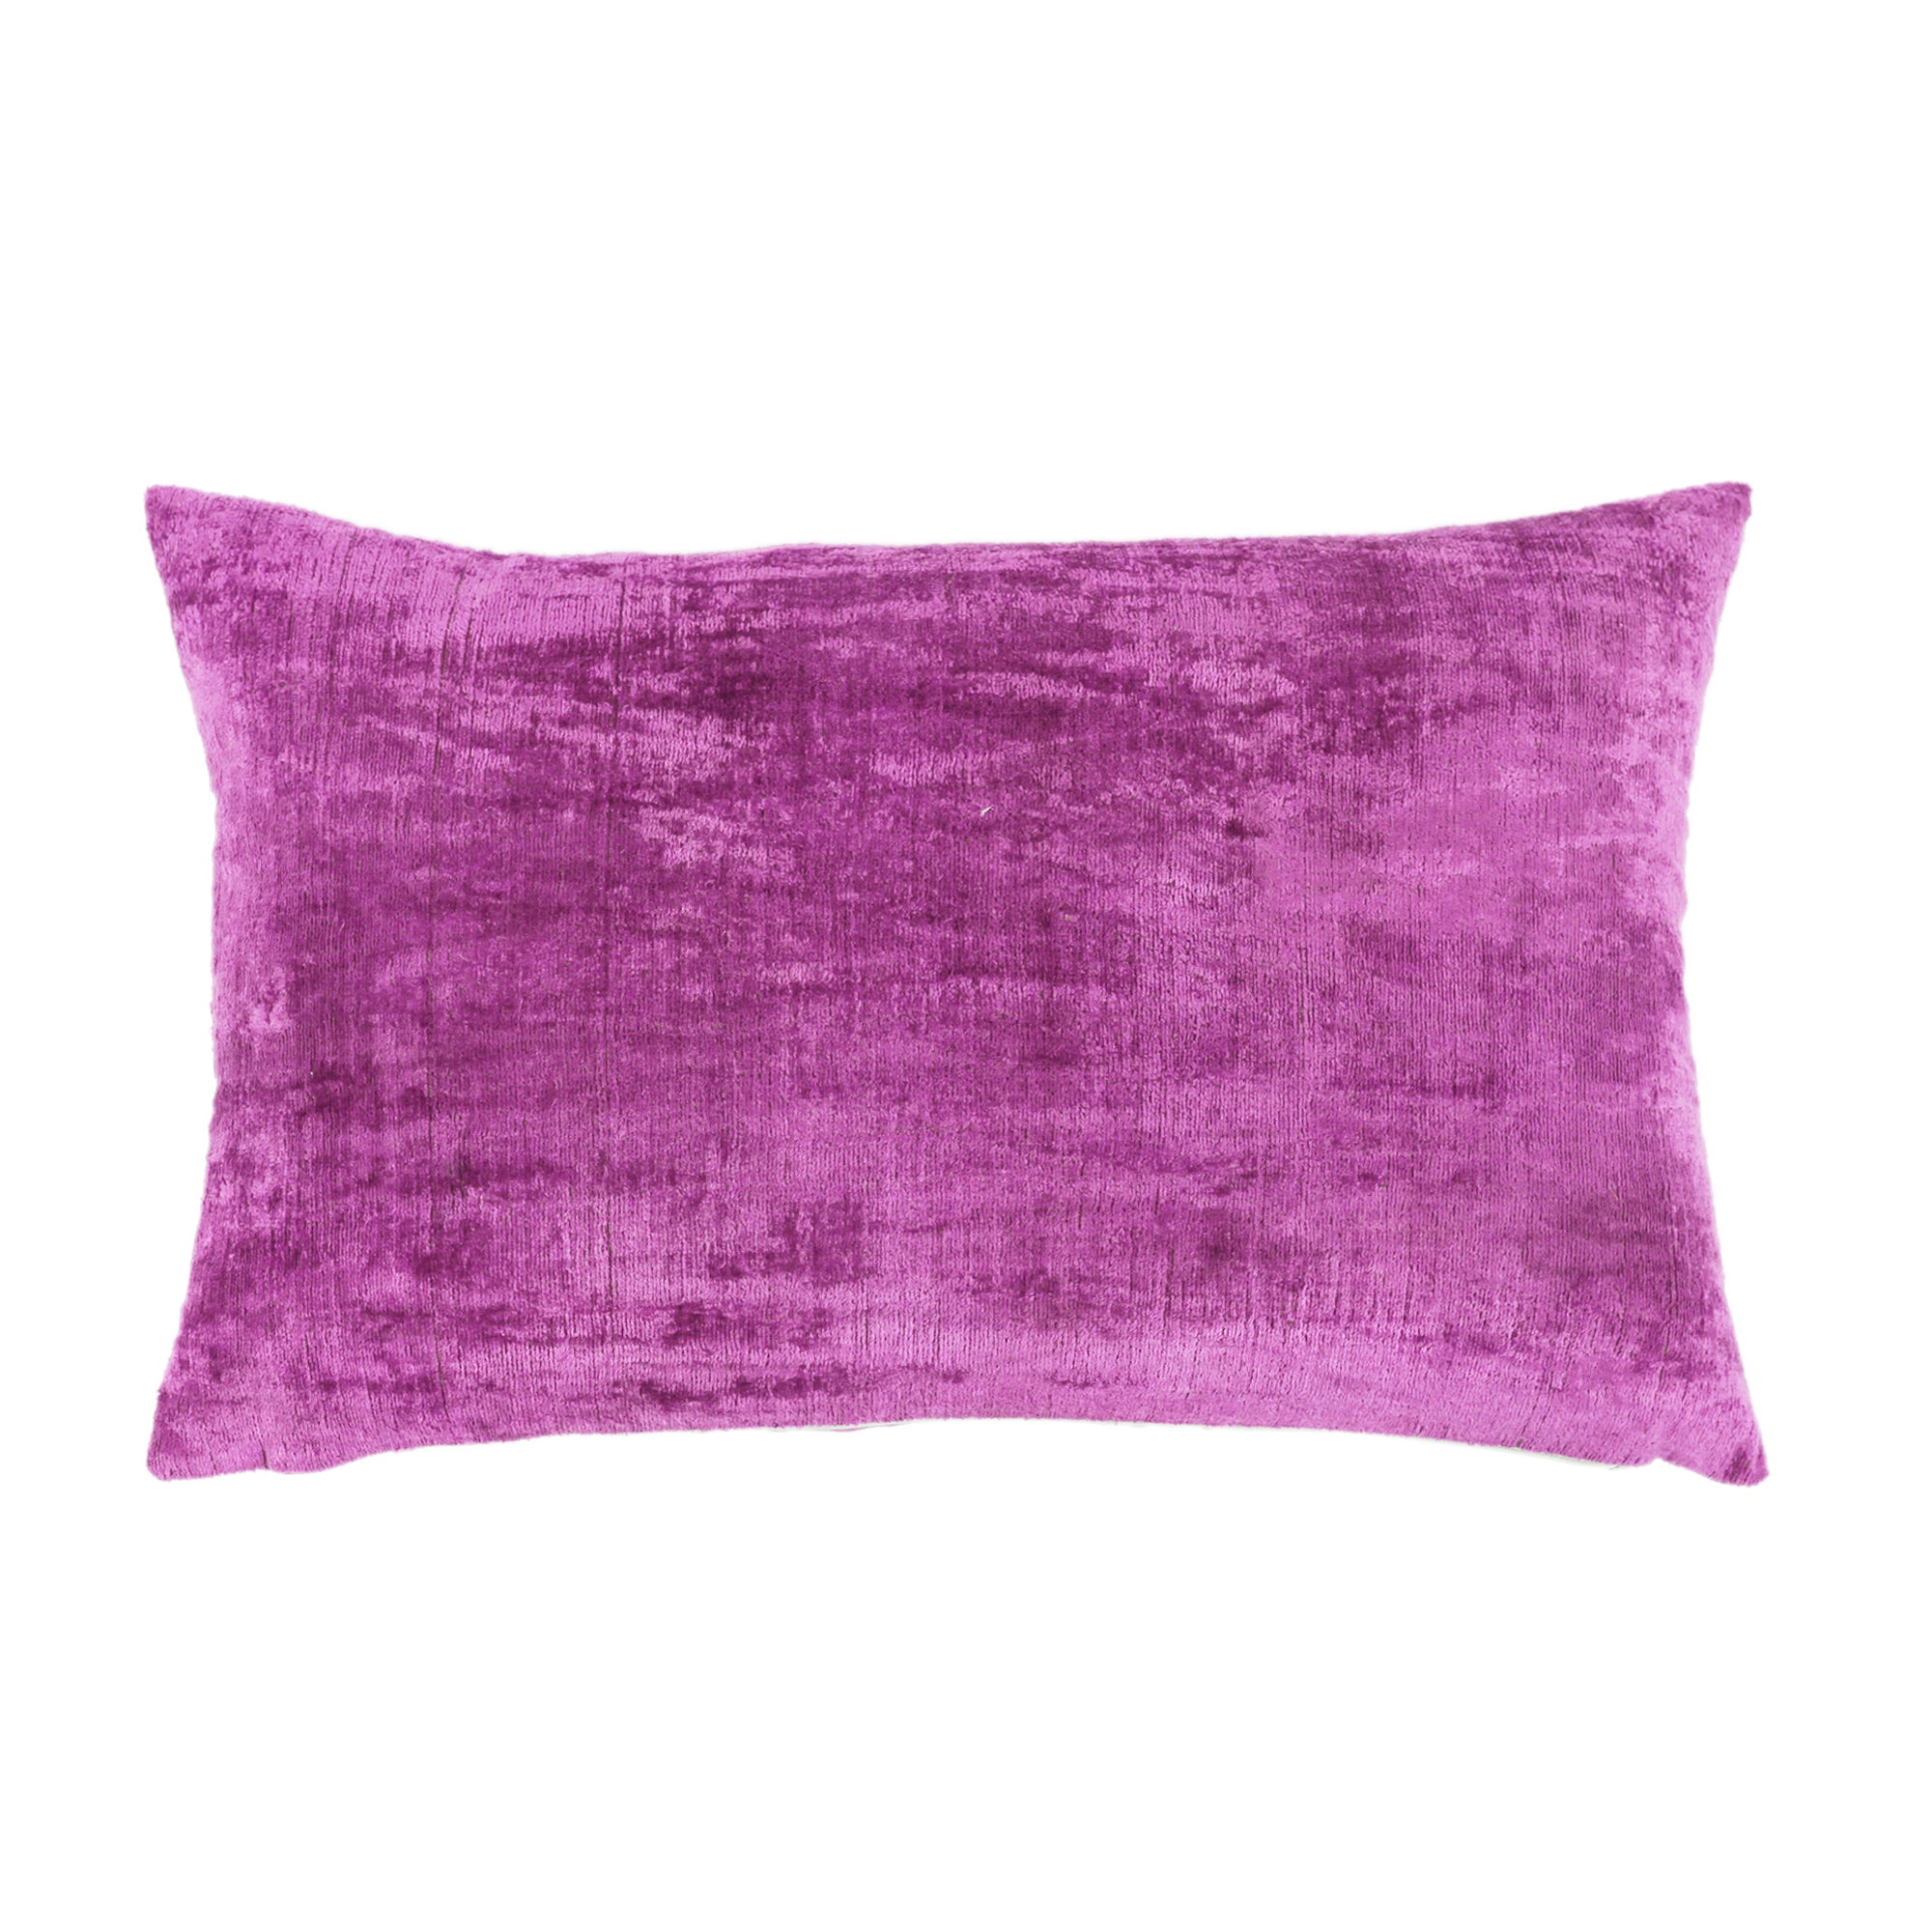 Velvet Handwoven Ikat Pillow